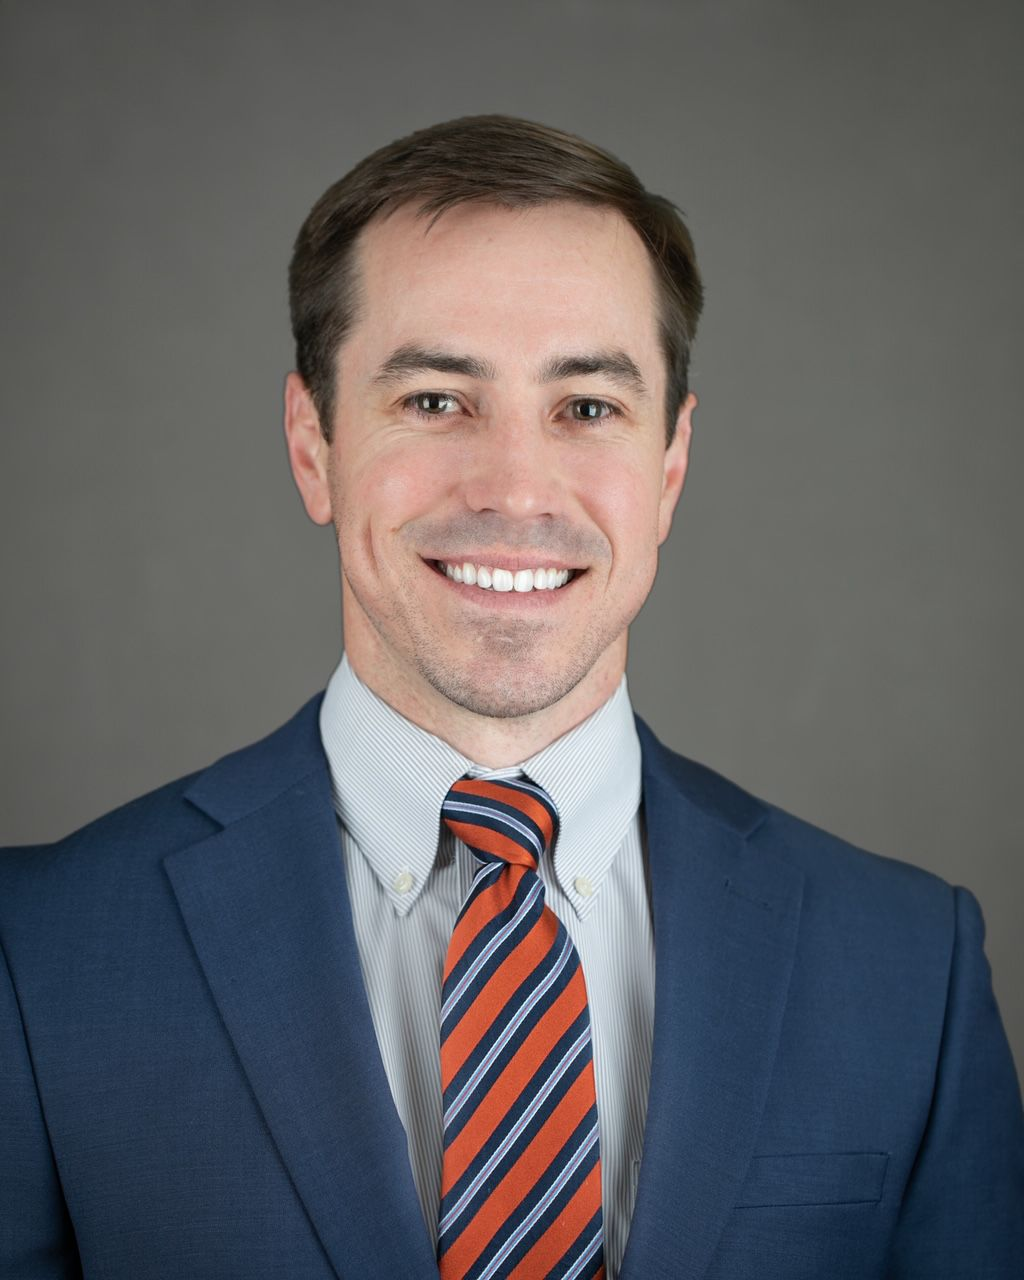 Bone and Joint Institute adds orthopaedic specialists